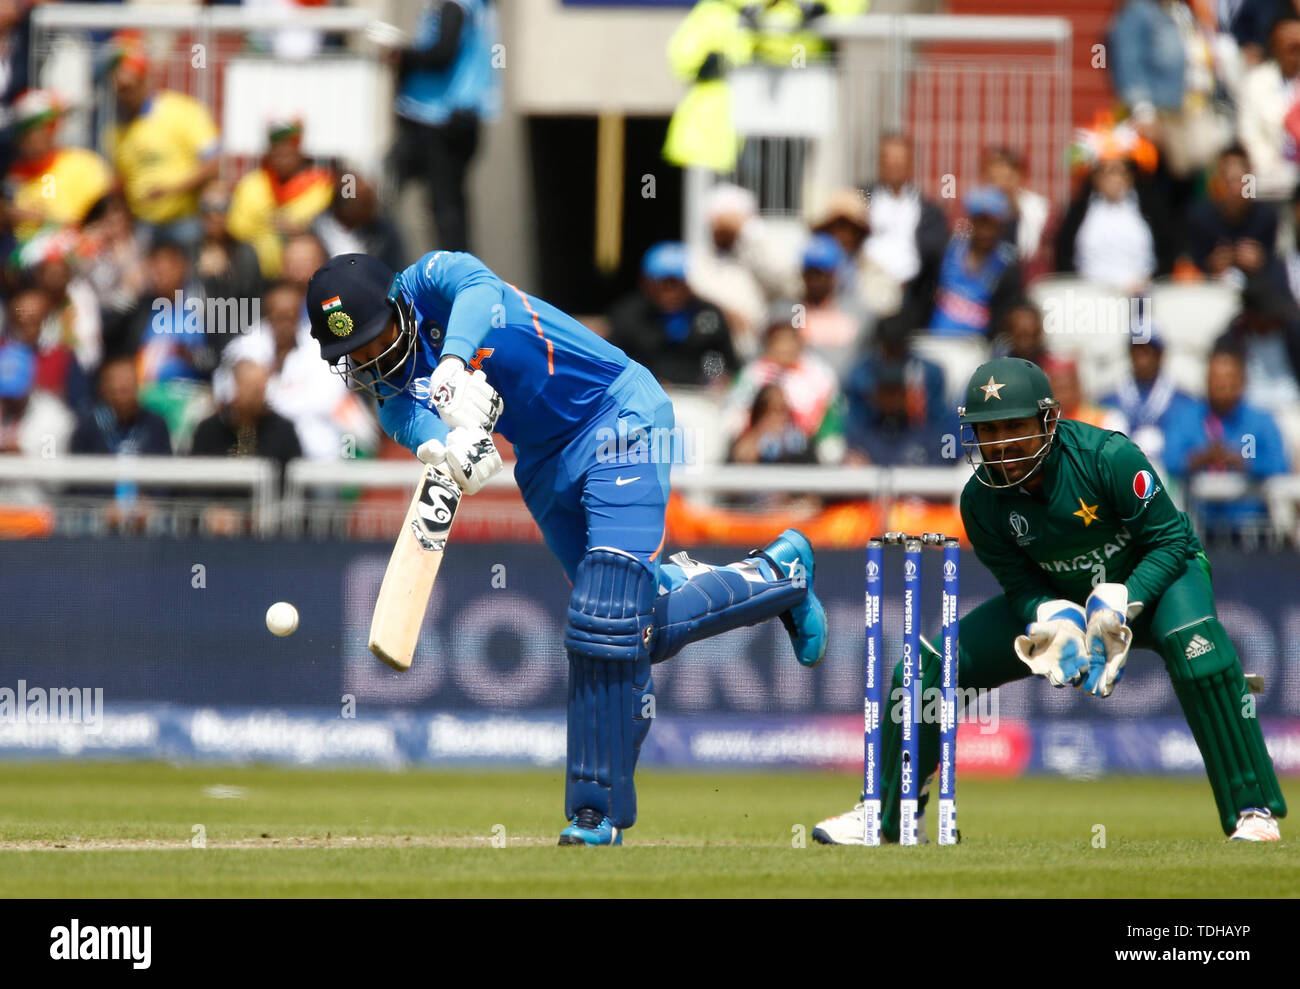 Old Trafford, Manchester, UK. 16th June, 2019. ICC World Cup Cricket, India versus Pakistan; KL Rahul of India plays a straight drive through the covers Credit: Action Plus Sports/Alamy Live News - Stock Image